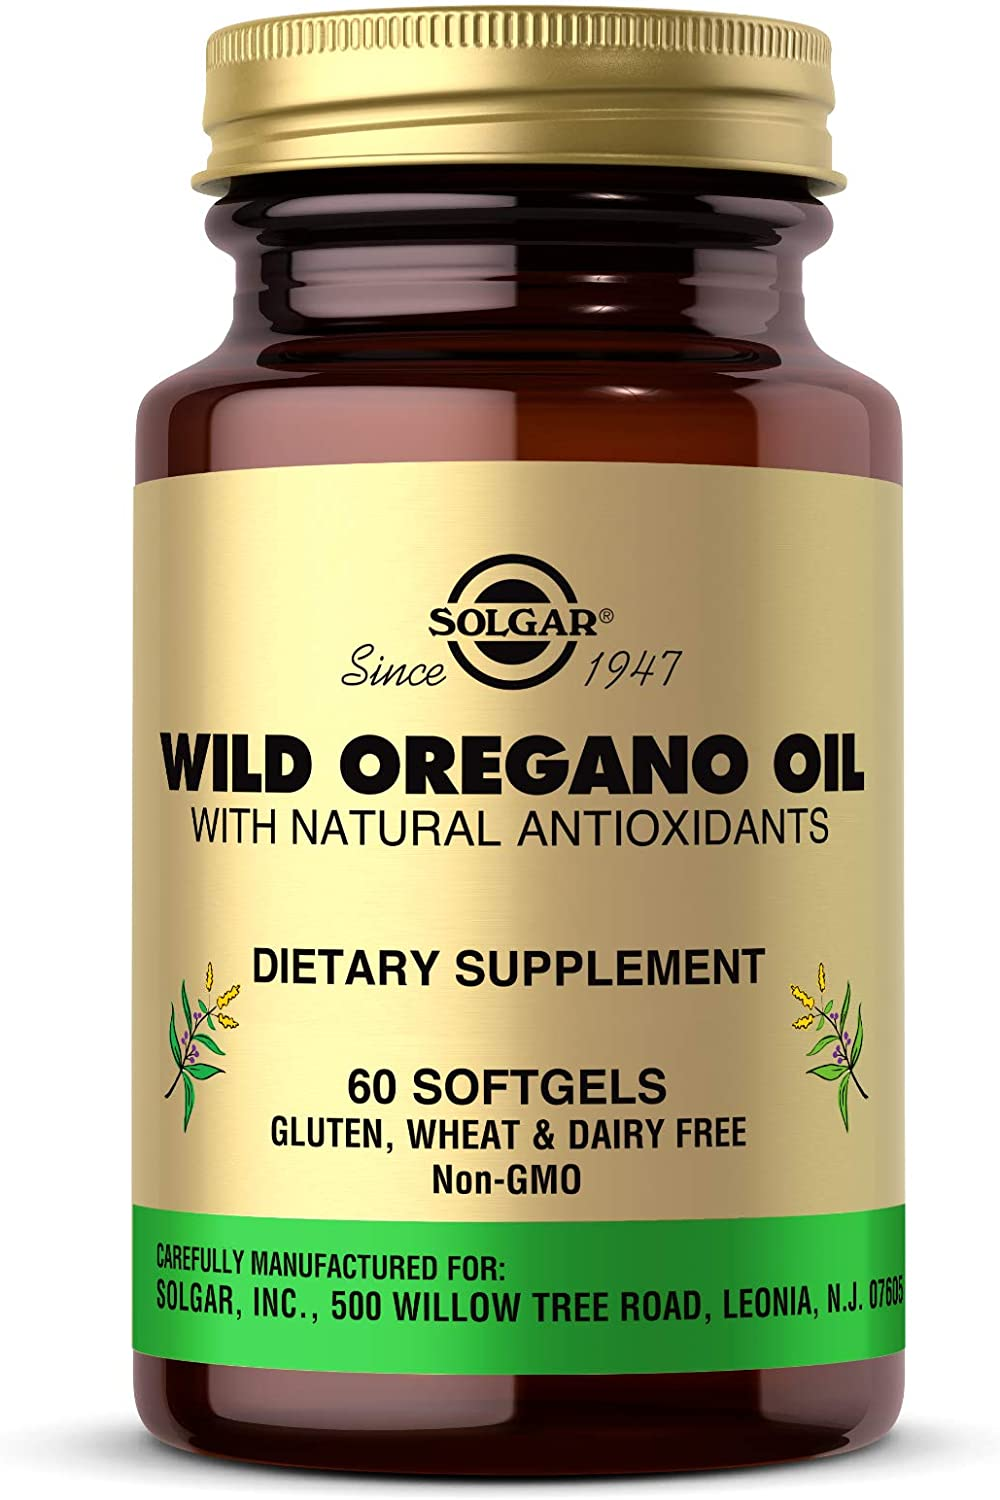 Solgar Wild Oregano Oil, 60 Softgels - High Quality Oregano Oil Concentrate - Immune Support - Includes Natural Antioxidant Phytochemicals - Non GMO, Gluten Free, Dairy Free - 60 Servings: Health & Personal Care